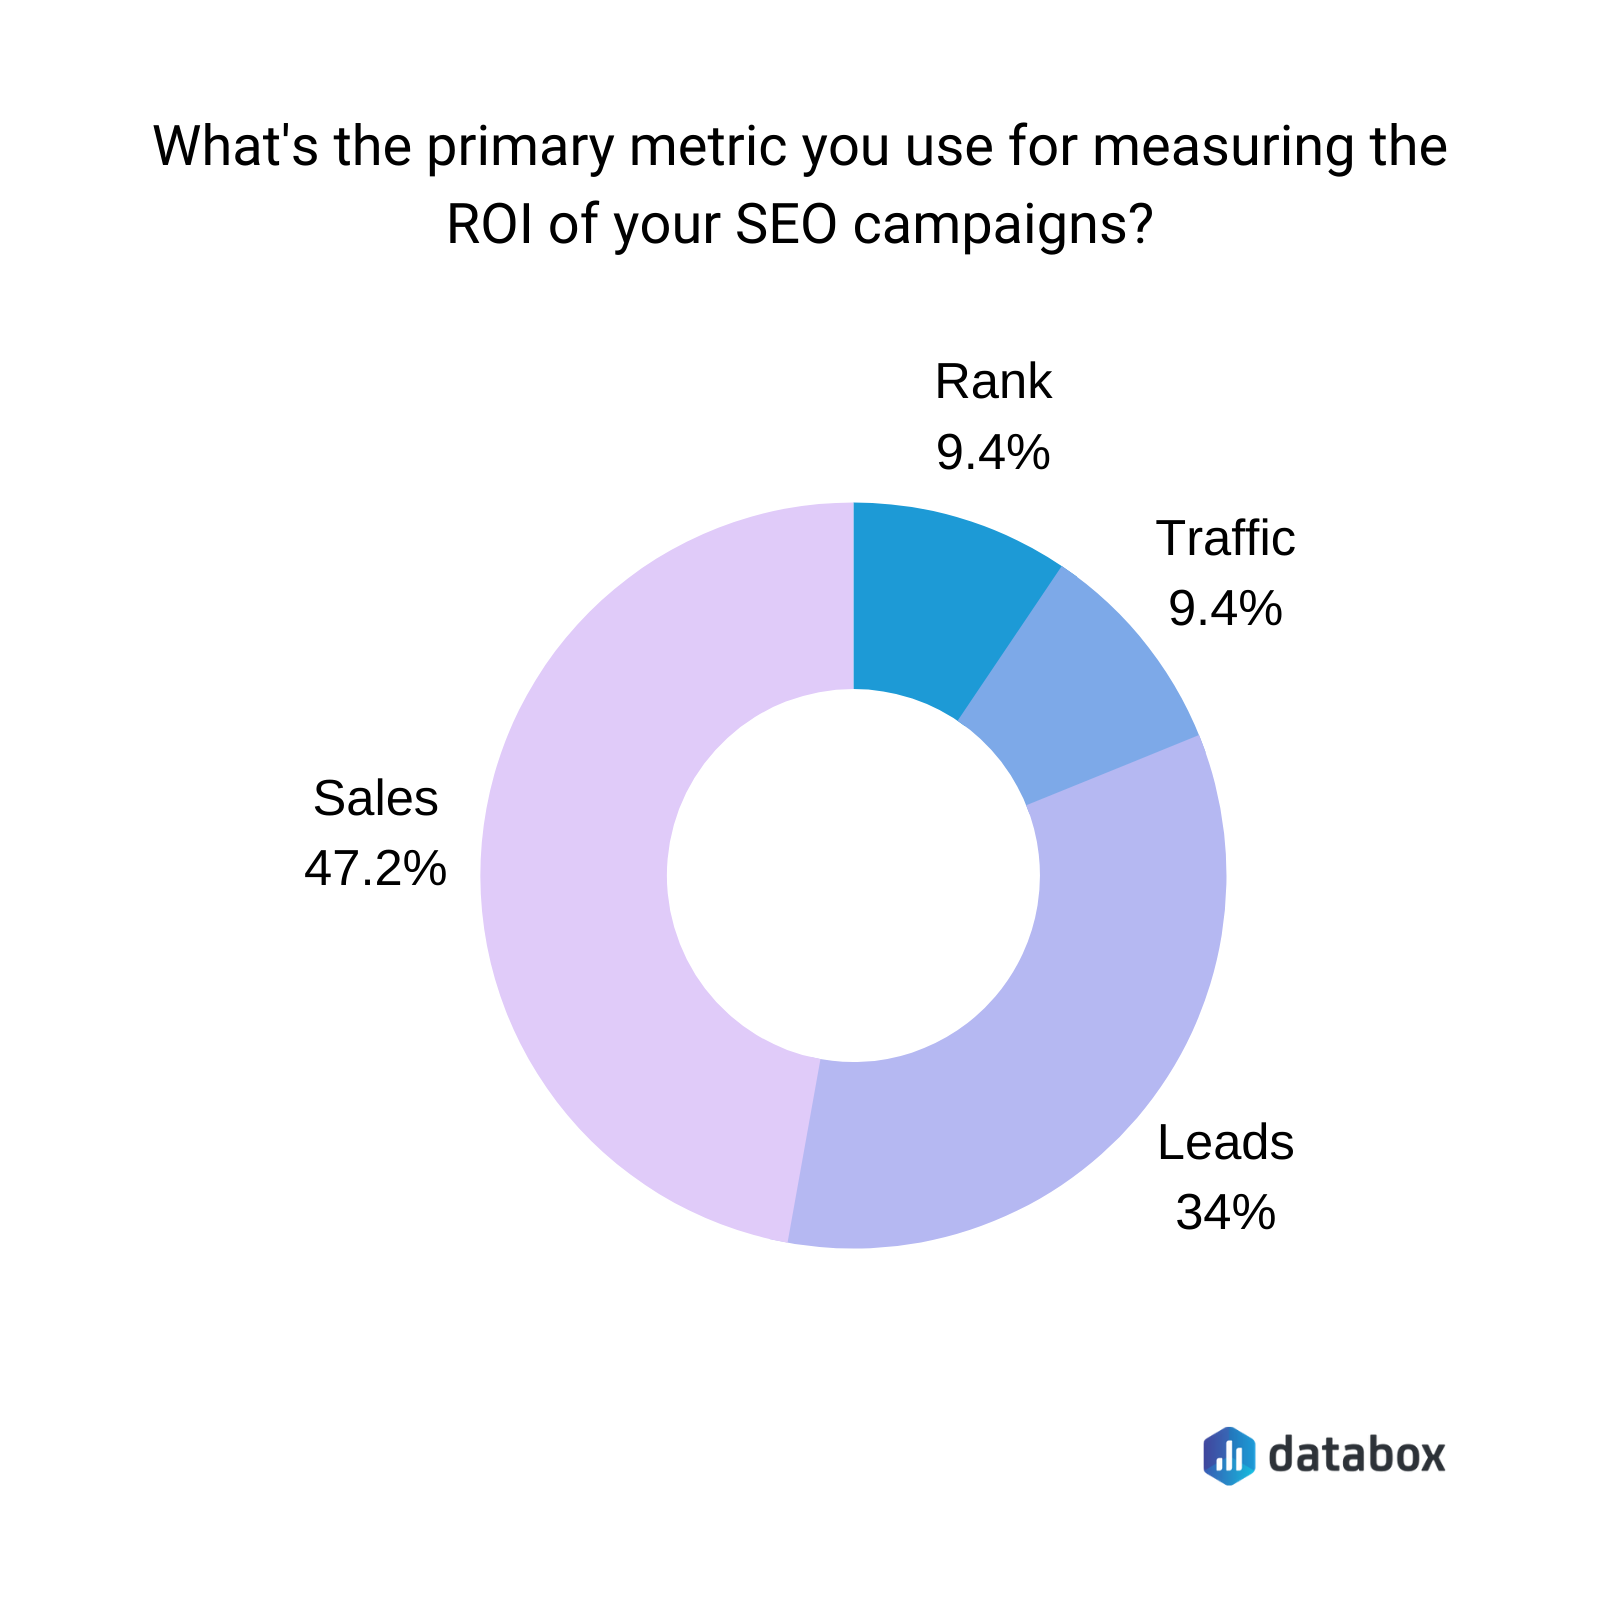 What primary metrics you use for measuring the ROI of your SEO campaigns